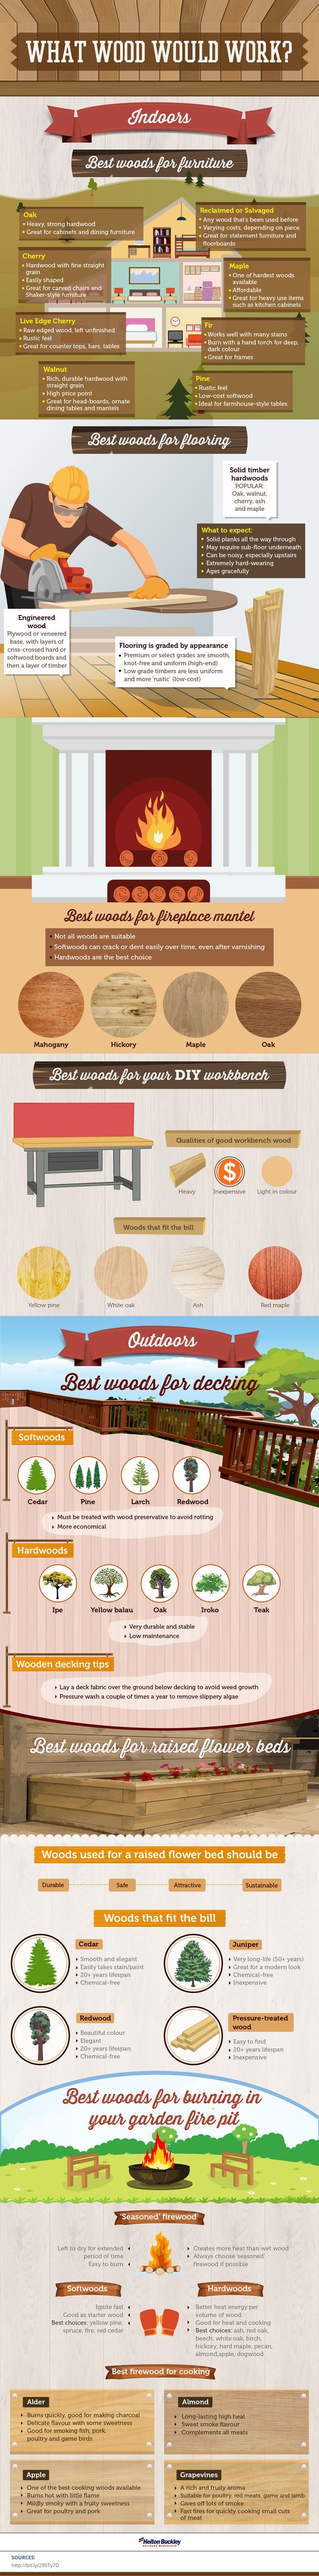 What Wood Would Work? [Infographic] | Your Ultimate Guide For Your Wood Working Projects by DIY Ready at http://diyready.com/what-wood-would-work/